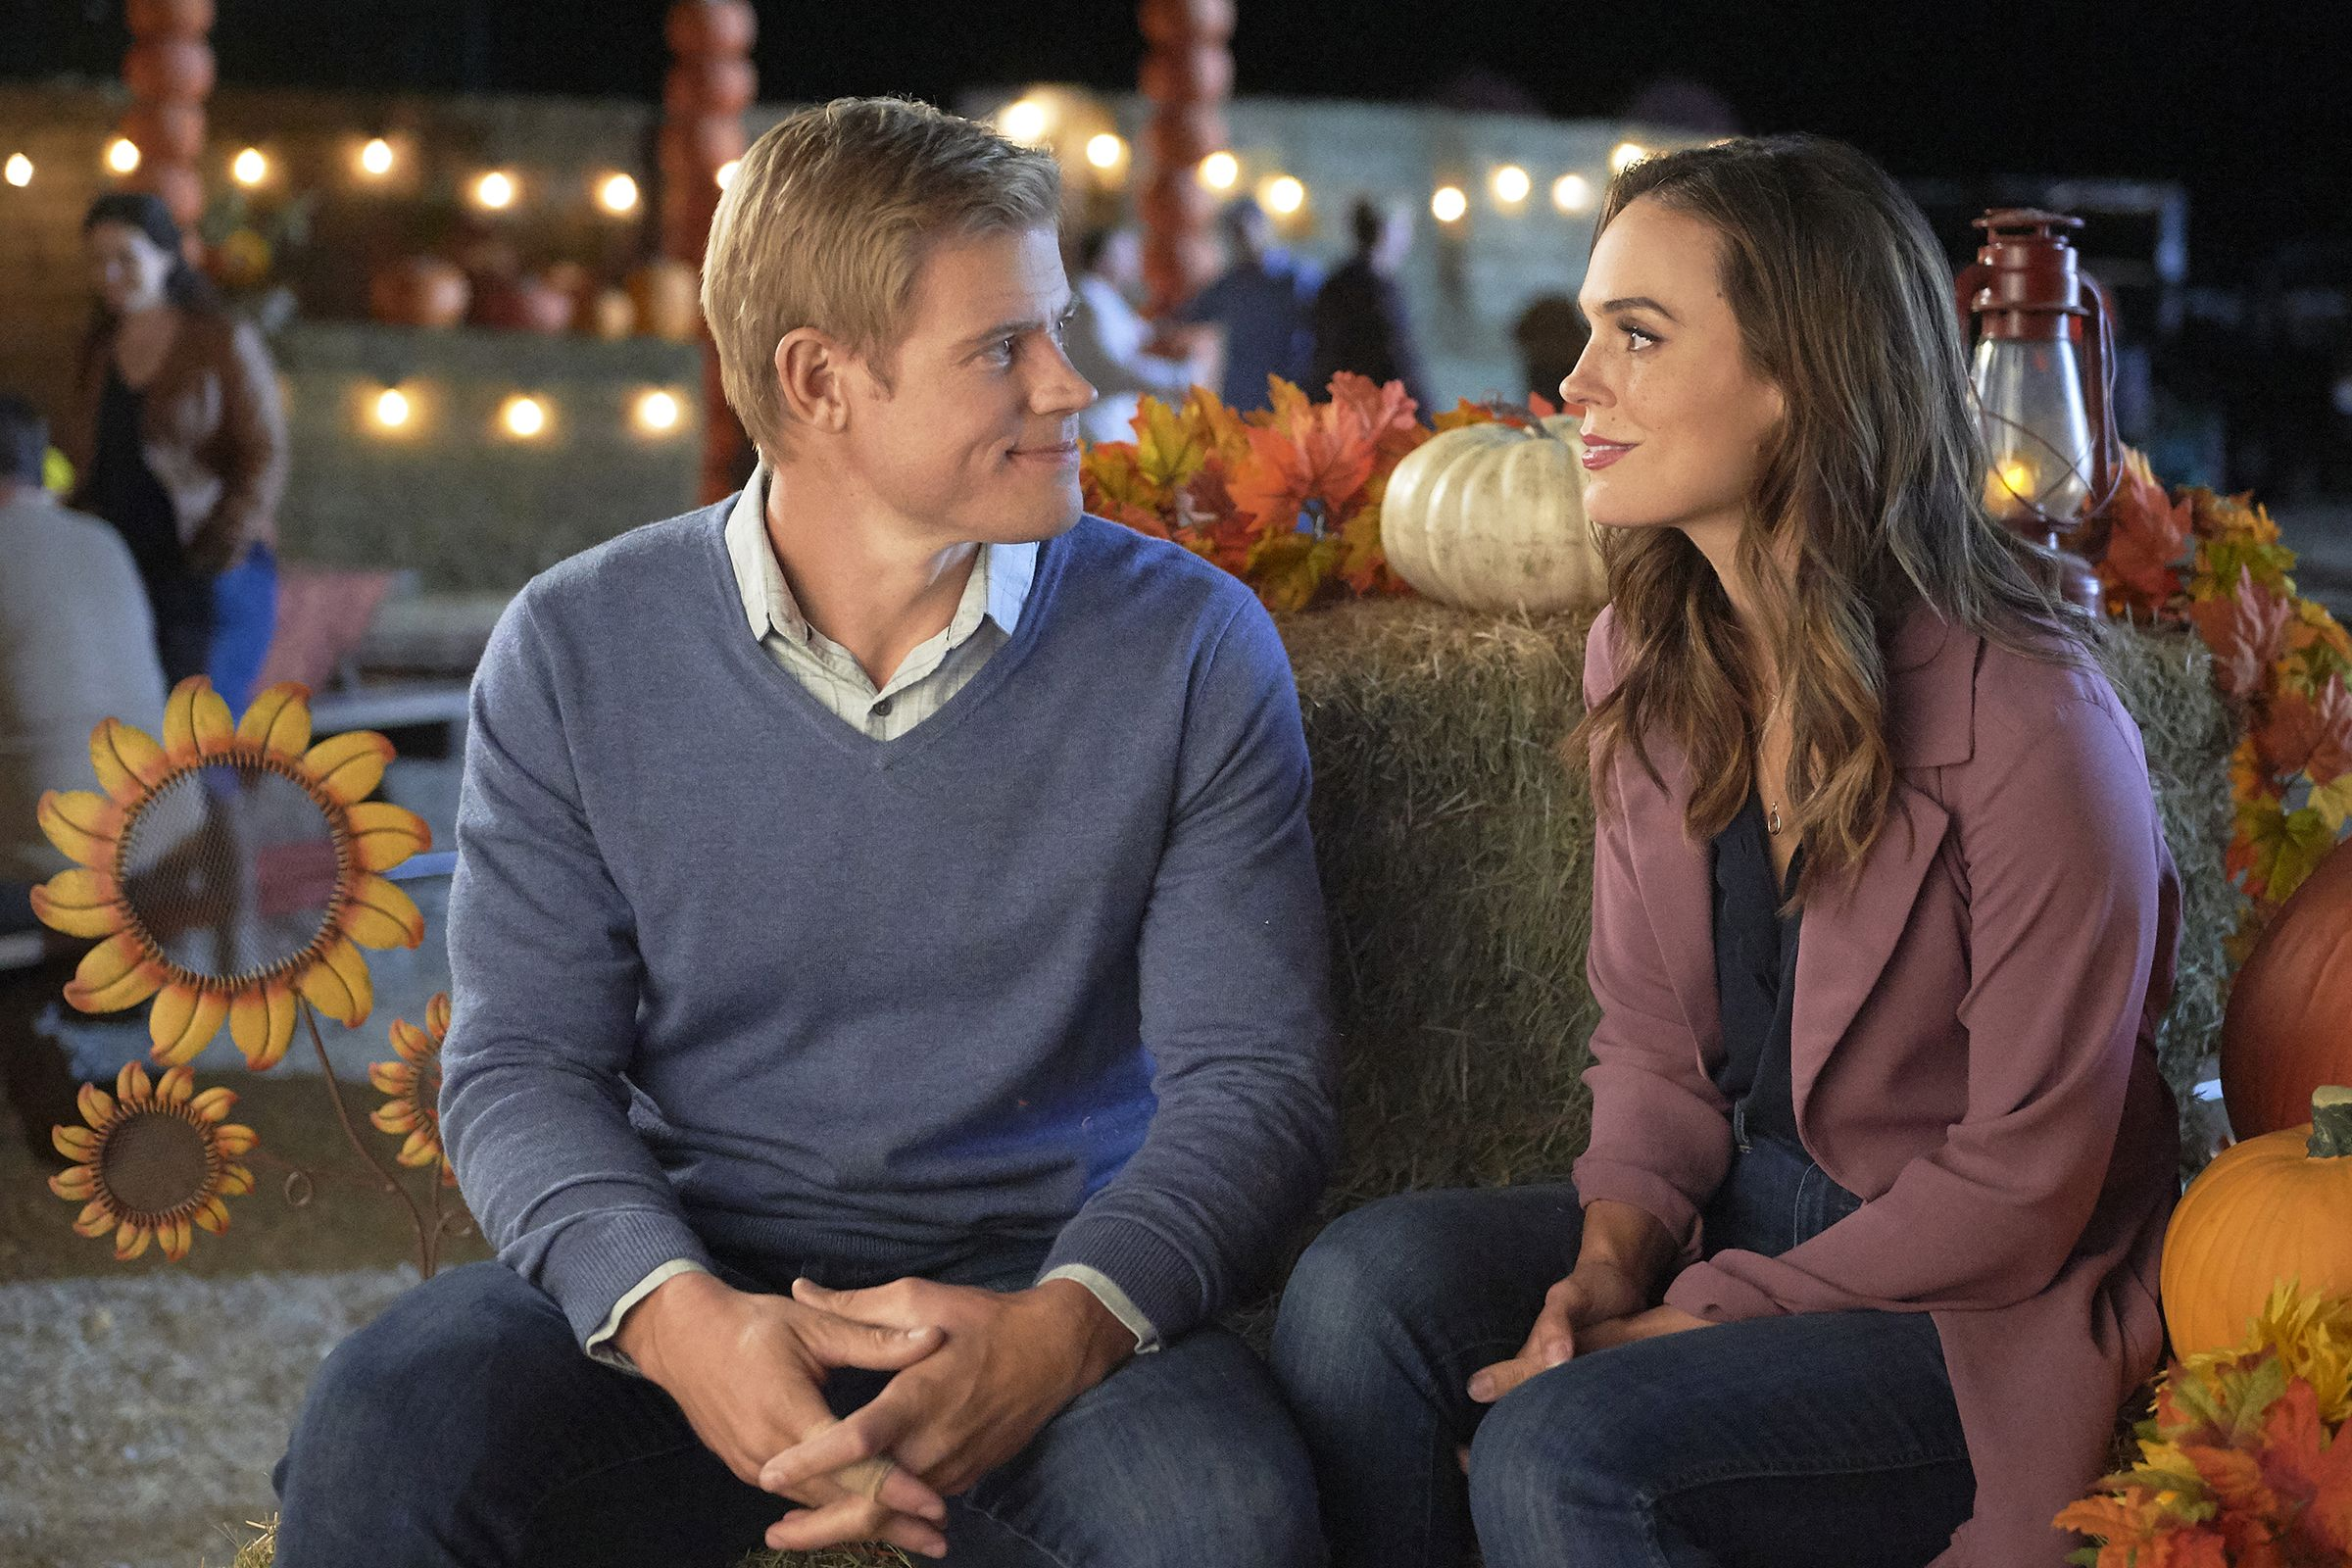 Hallmark's Fall Harvest Schedule Is Here and It's Premiering 5 New Movies